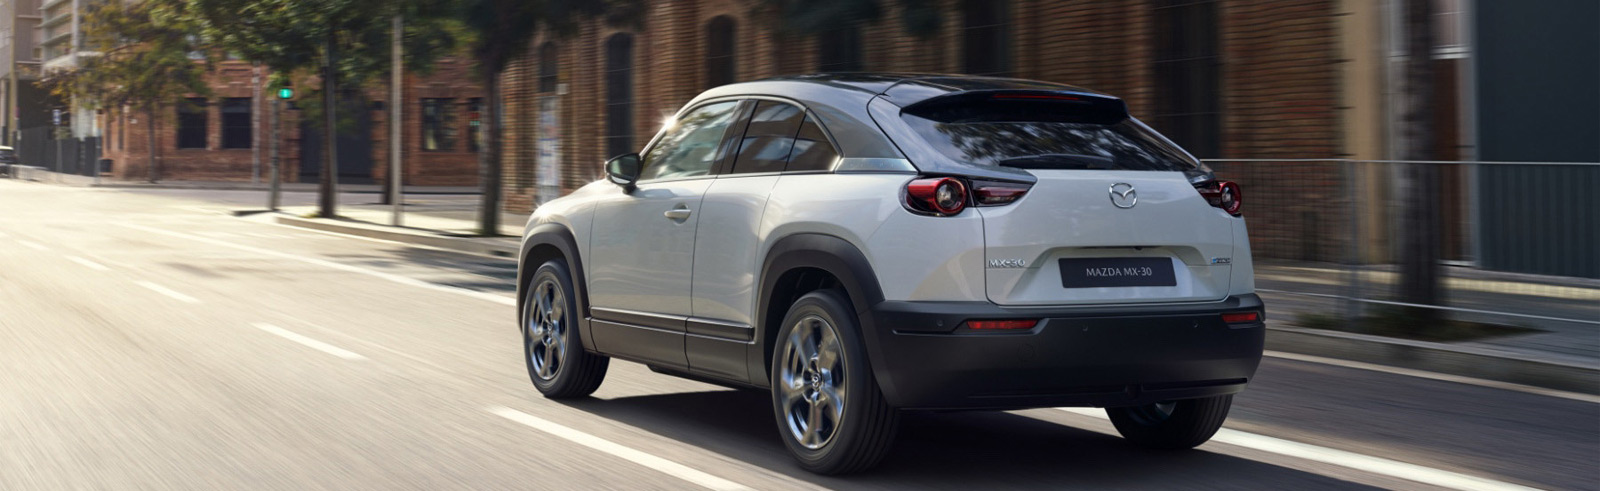 Mazda MX-30 will go on sale in the USA this fall